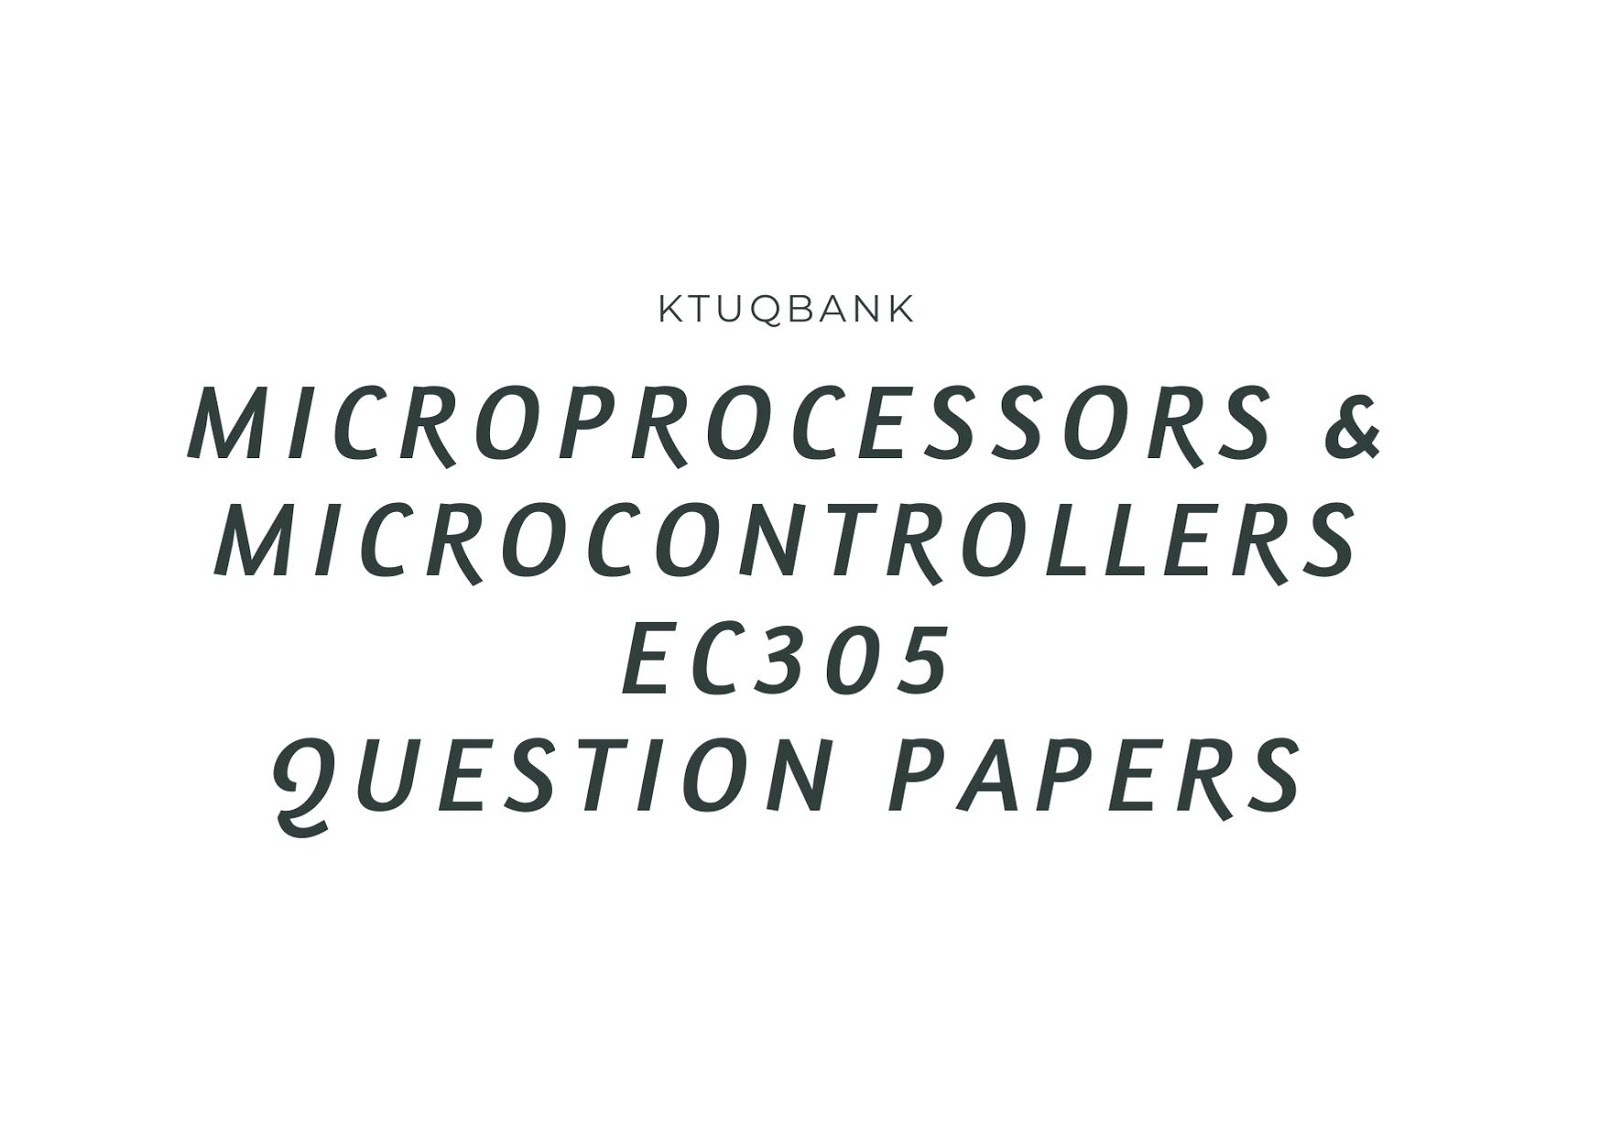 Microprocessors & Microcontrollers | EC305 | Question Papers (2015 batch)